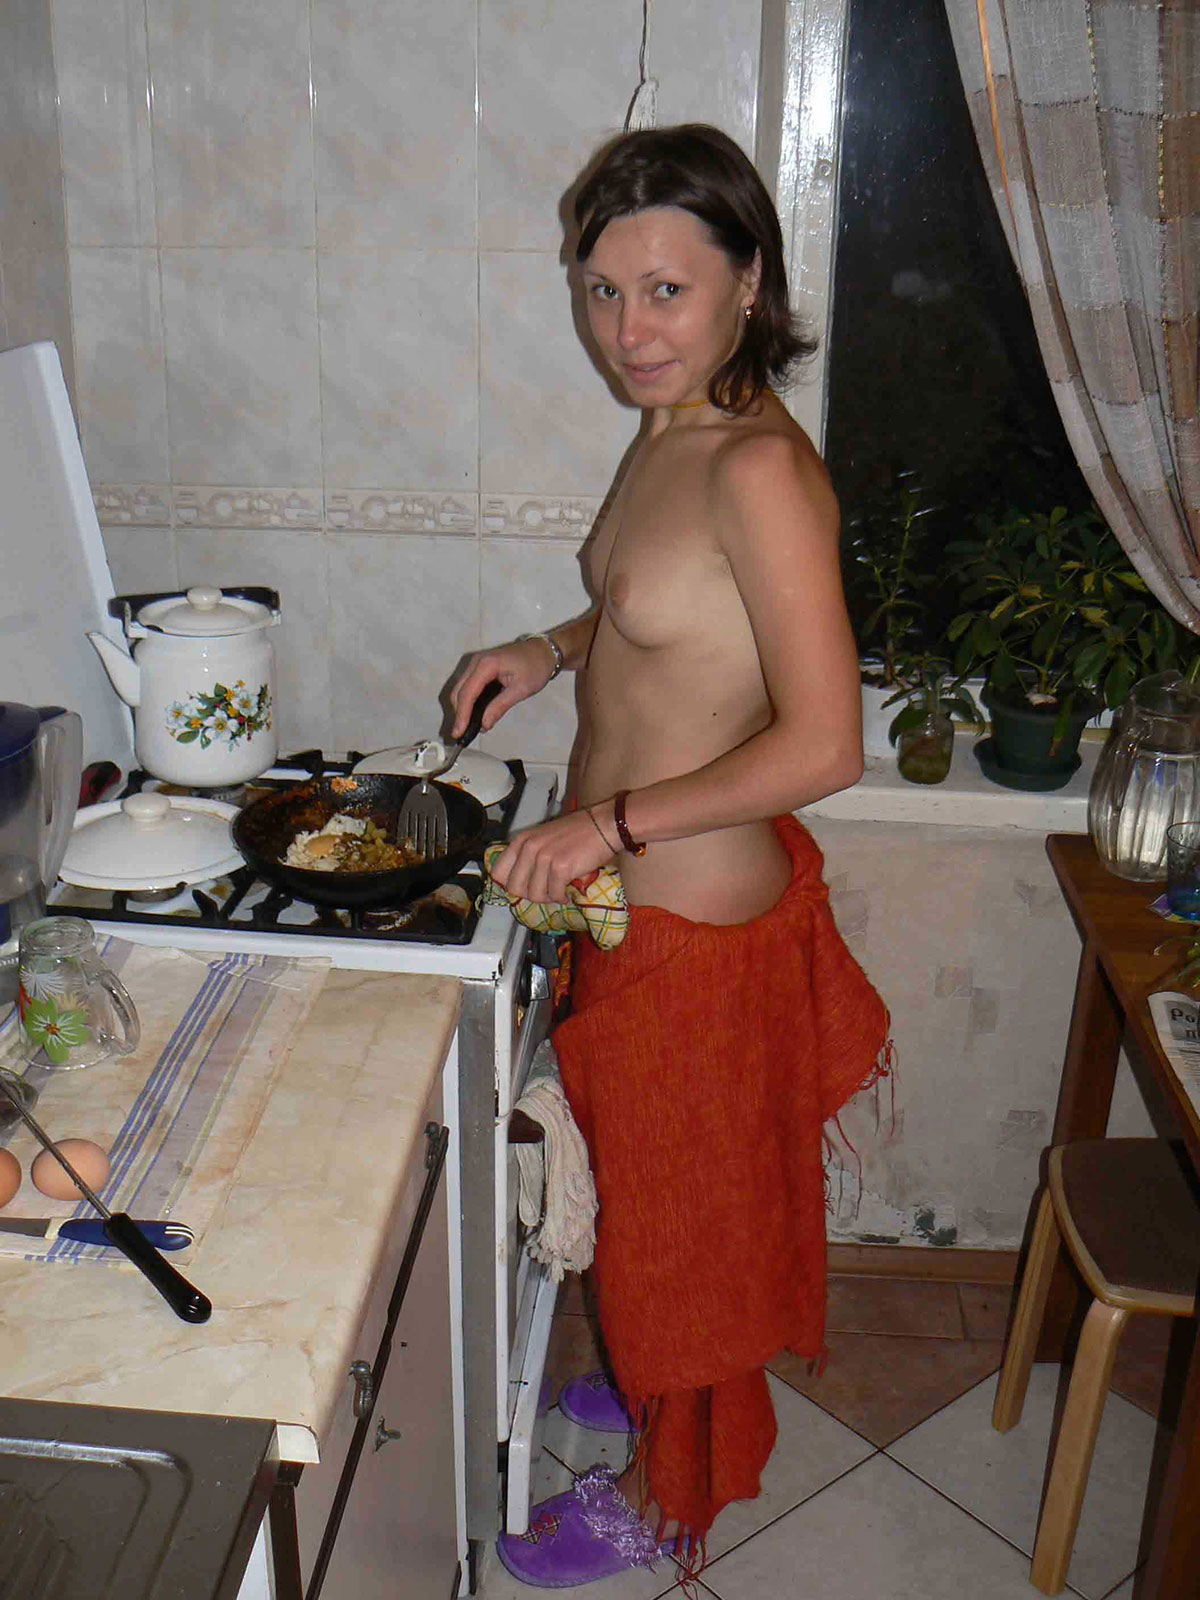 Girls in kitchen sexy pic